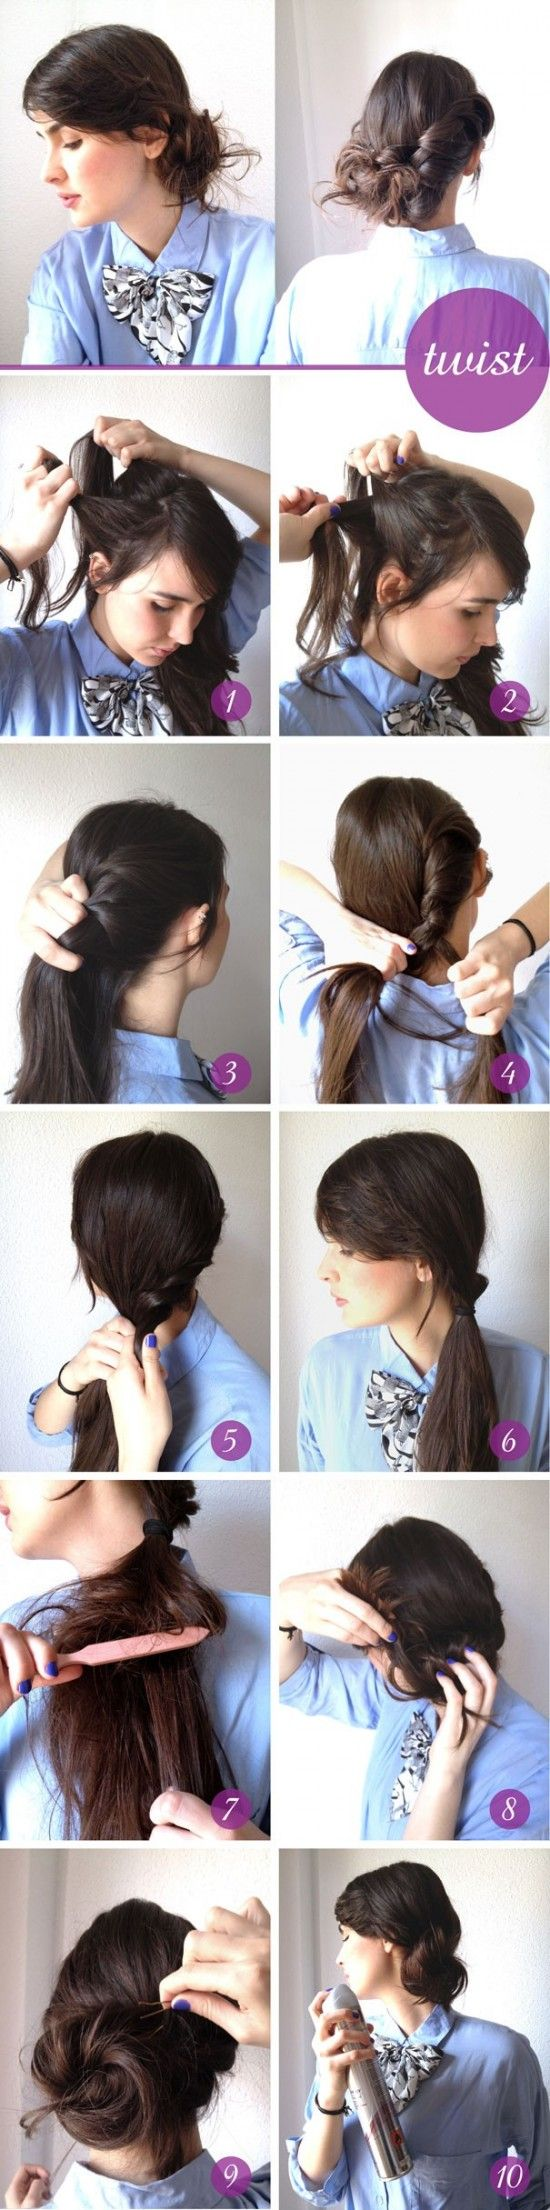 Cool 1000 Images About Hairstyles On Pinterest Updo Parted Bangs Short Hairstyles Gunalazisus